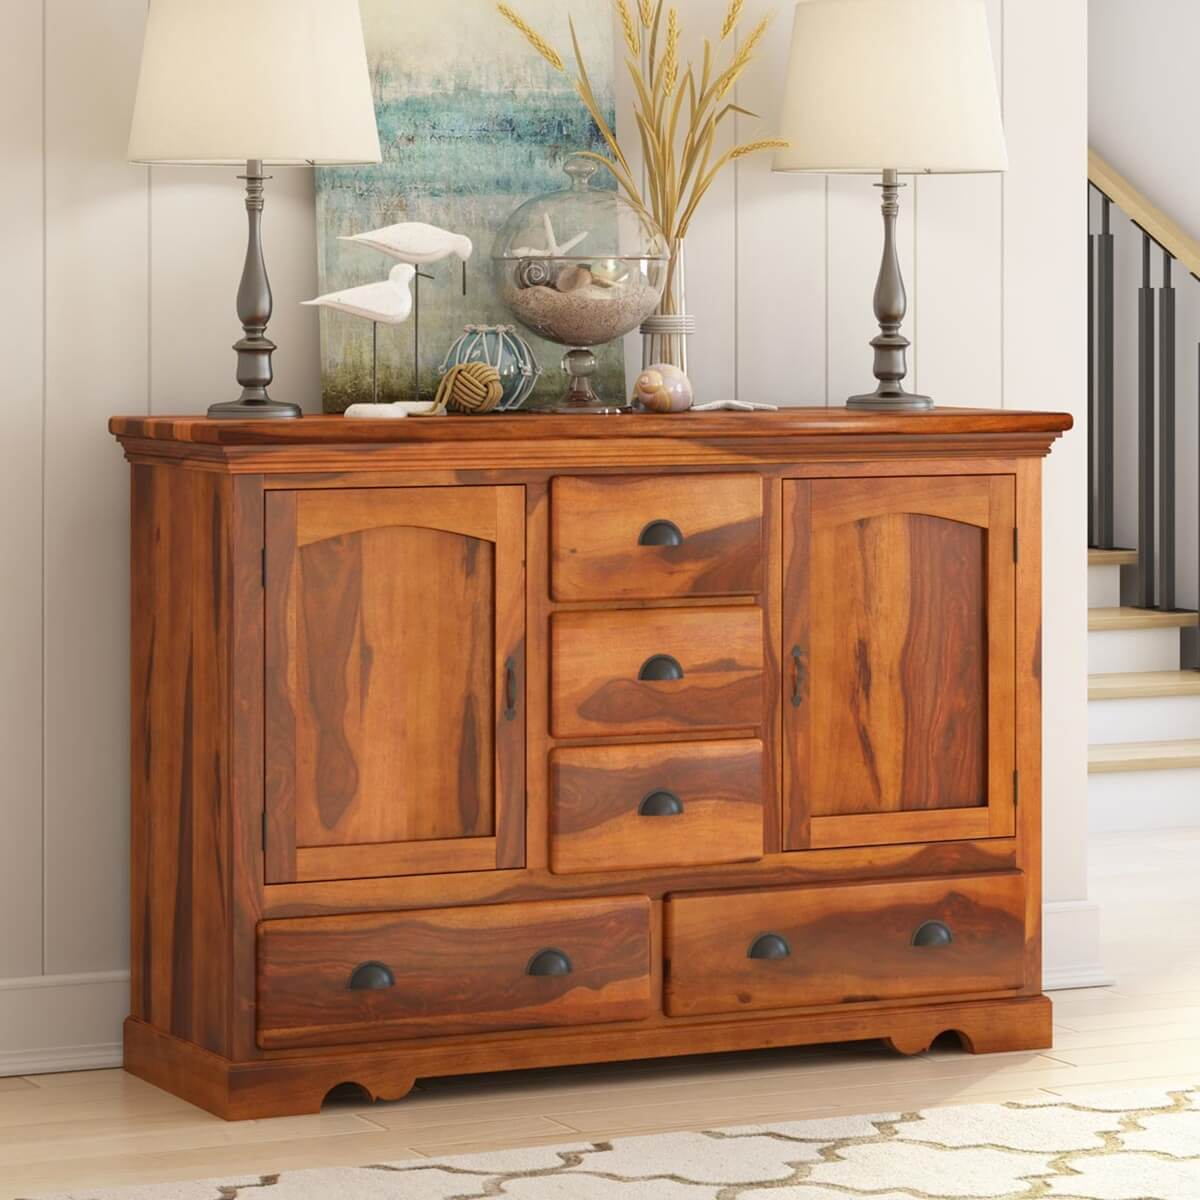 Dining Room Buffet : Rustic Solid Wood 5 Drawer Traditional Dining Room Buffet & Sideboard